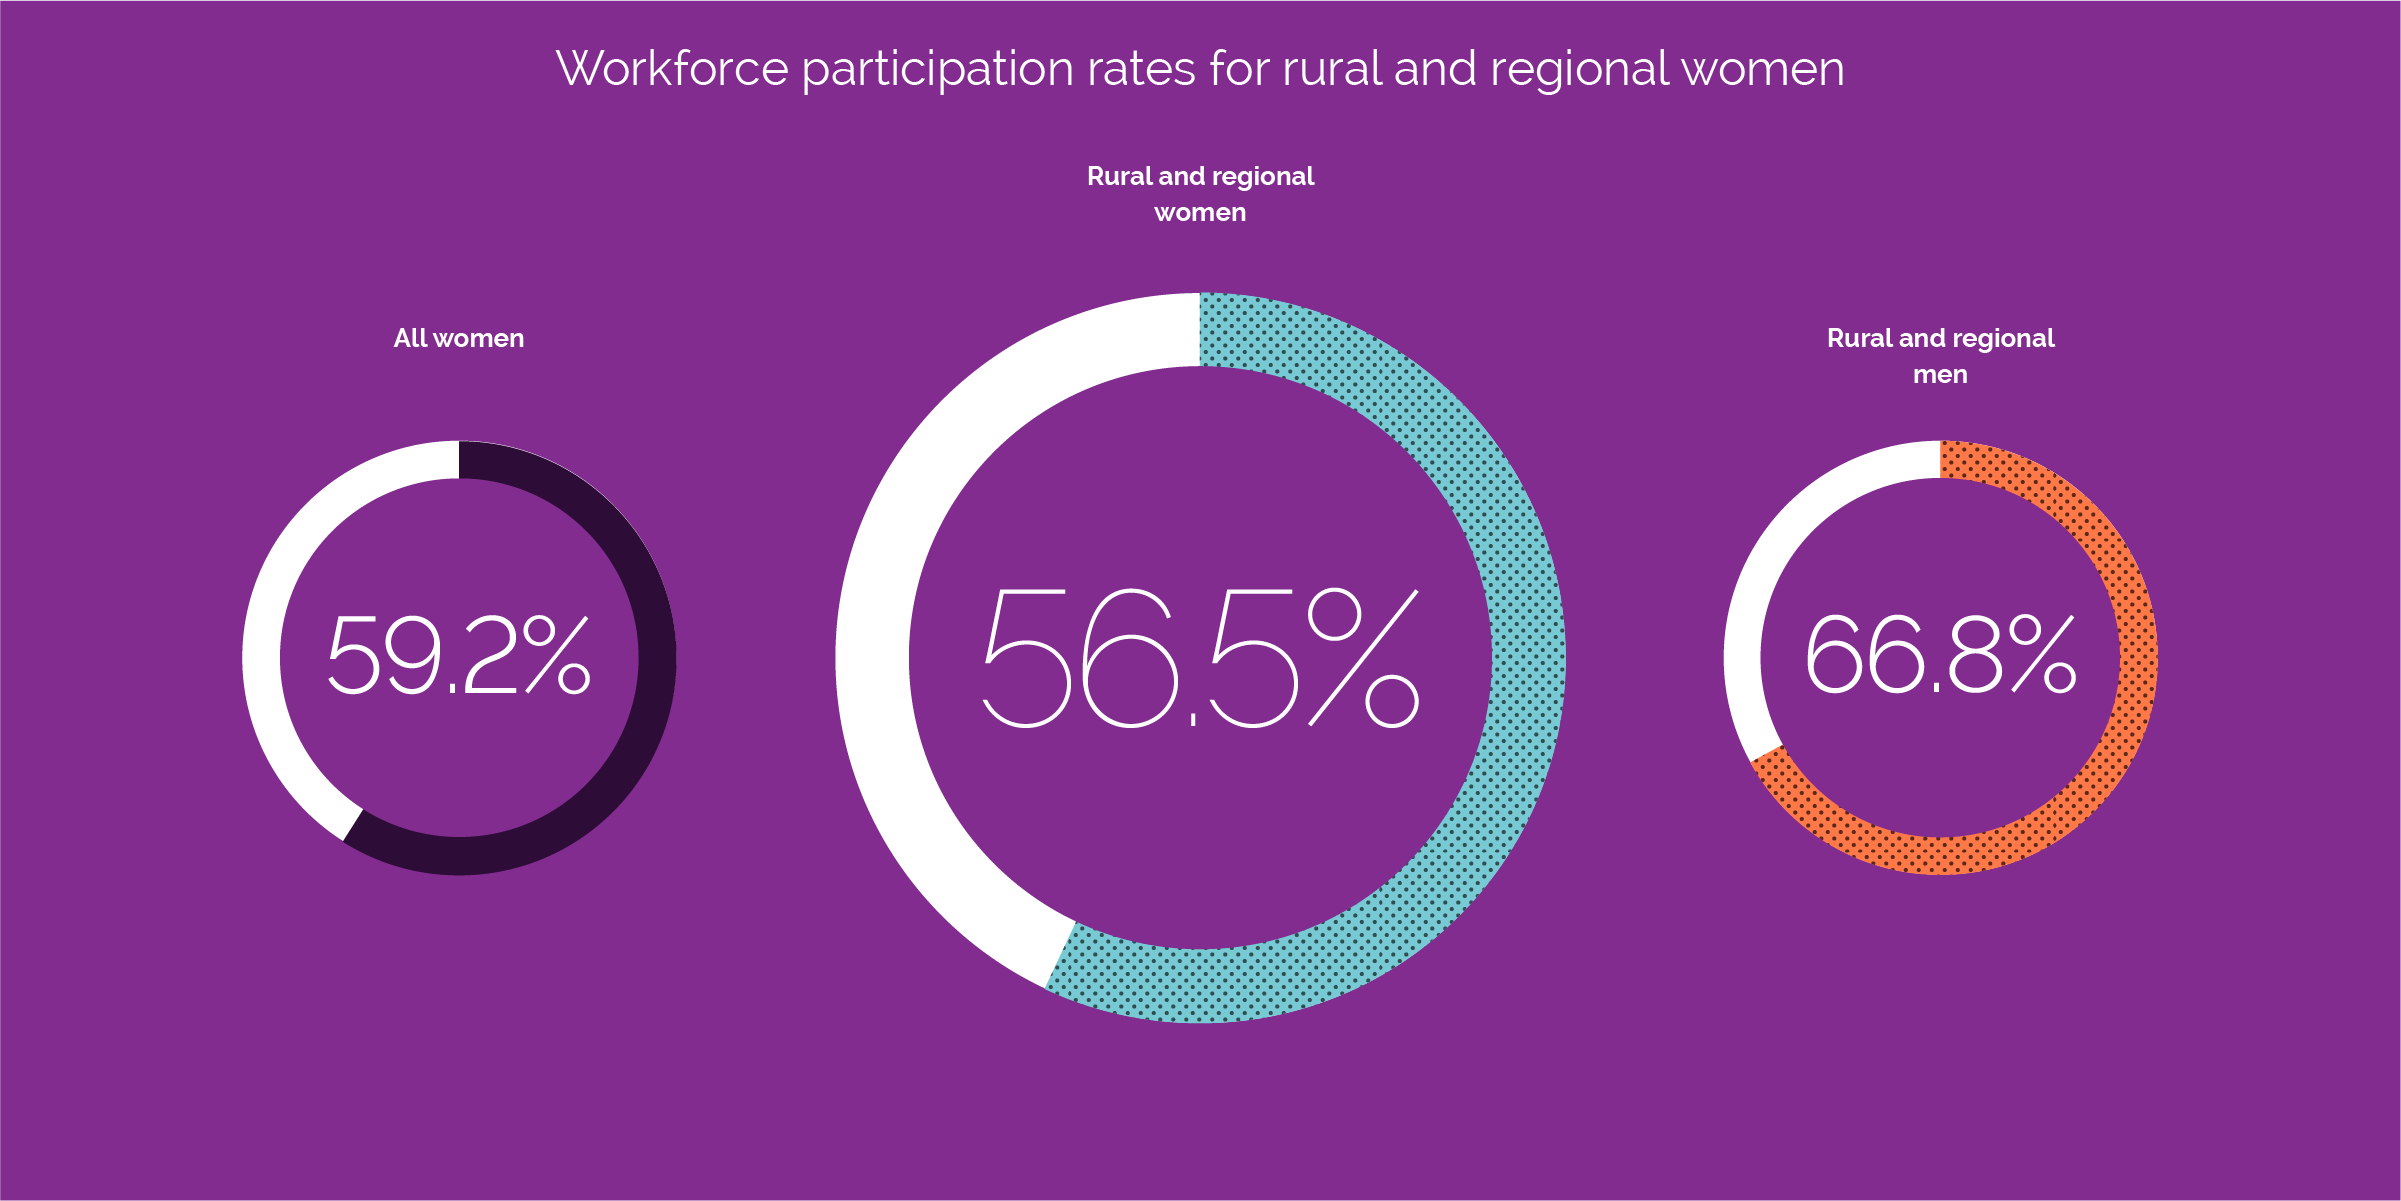 workforce participation rate for rural and regional women compared with all women